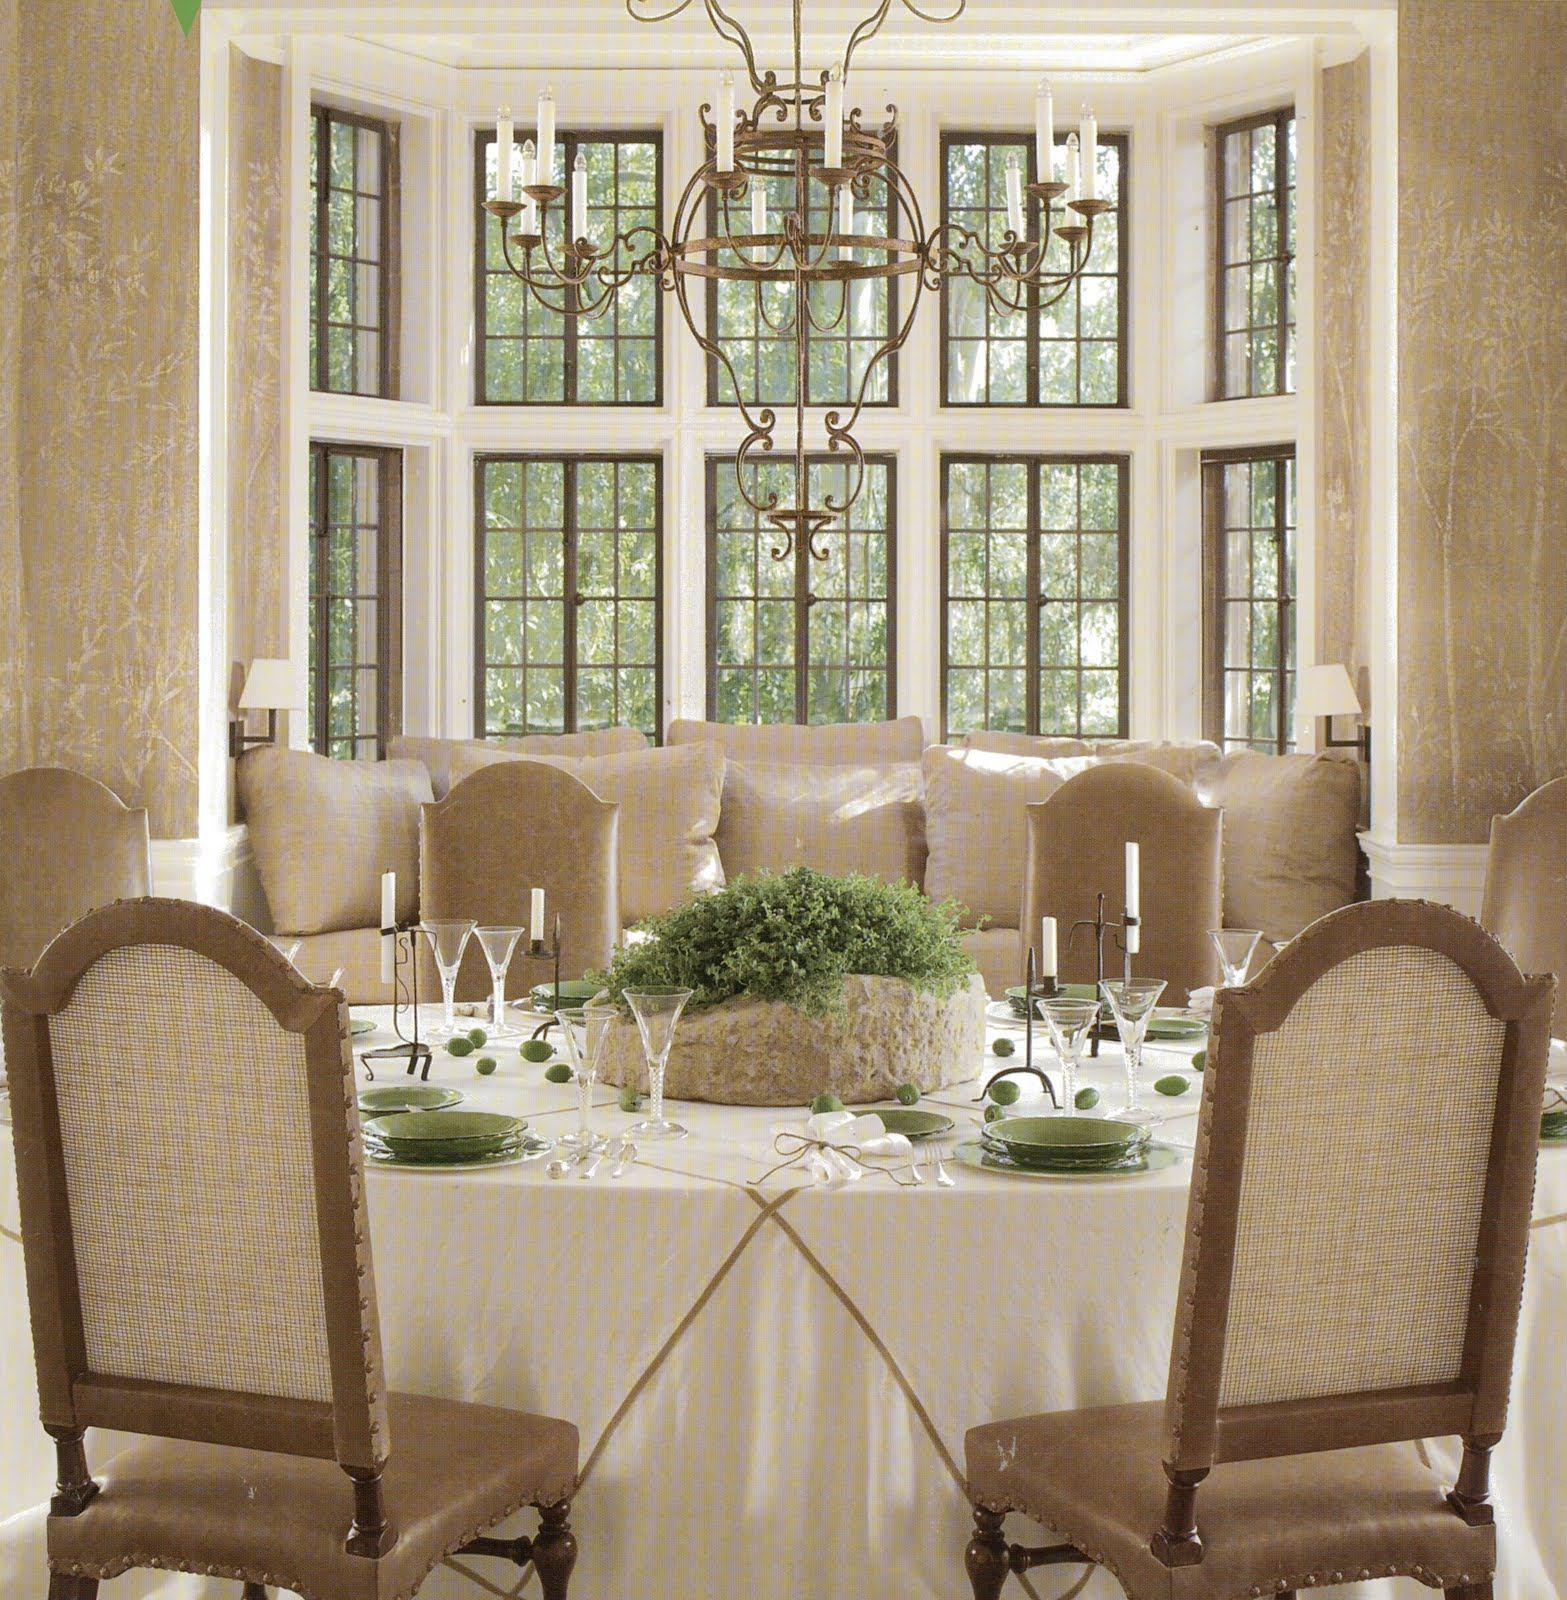 P s i love this ideas for dining room - Ideas of window treatments for bay windows in dining room ...